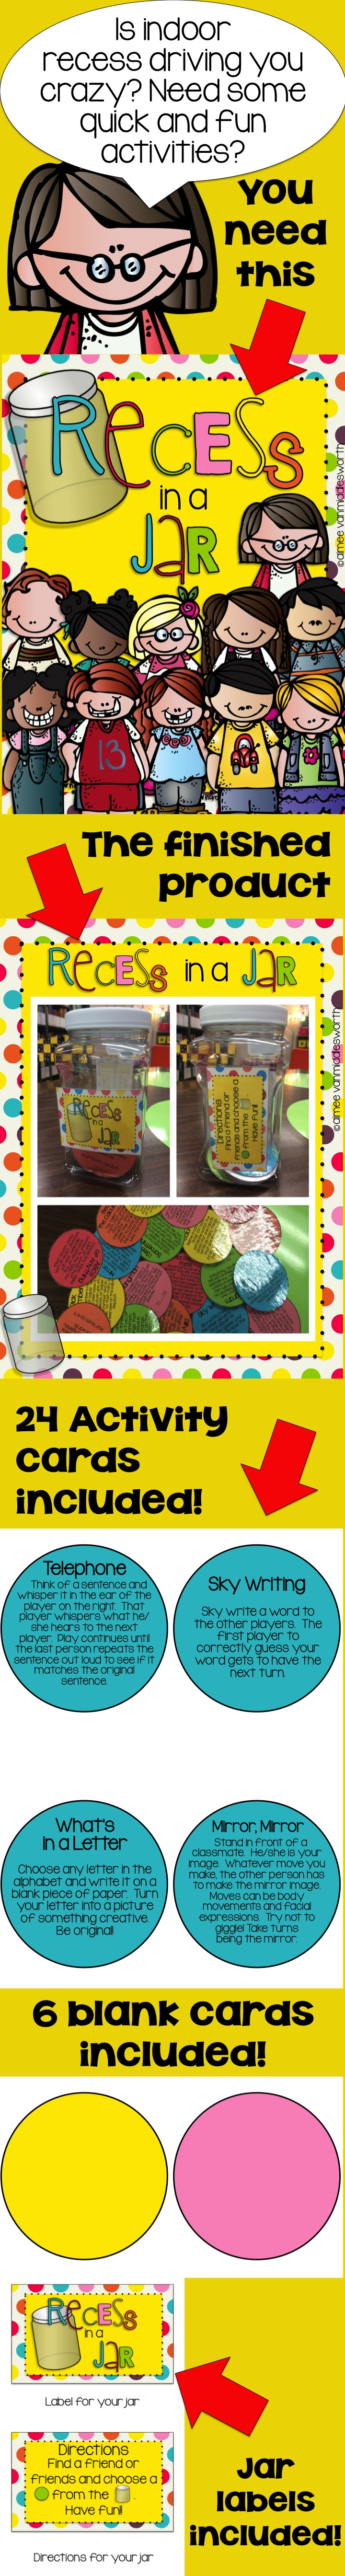 Recess in a Jar Activities for Indoor Recess Indoor